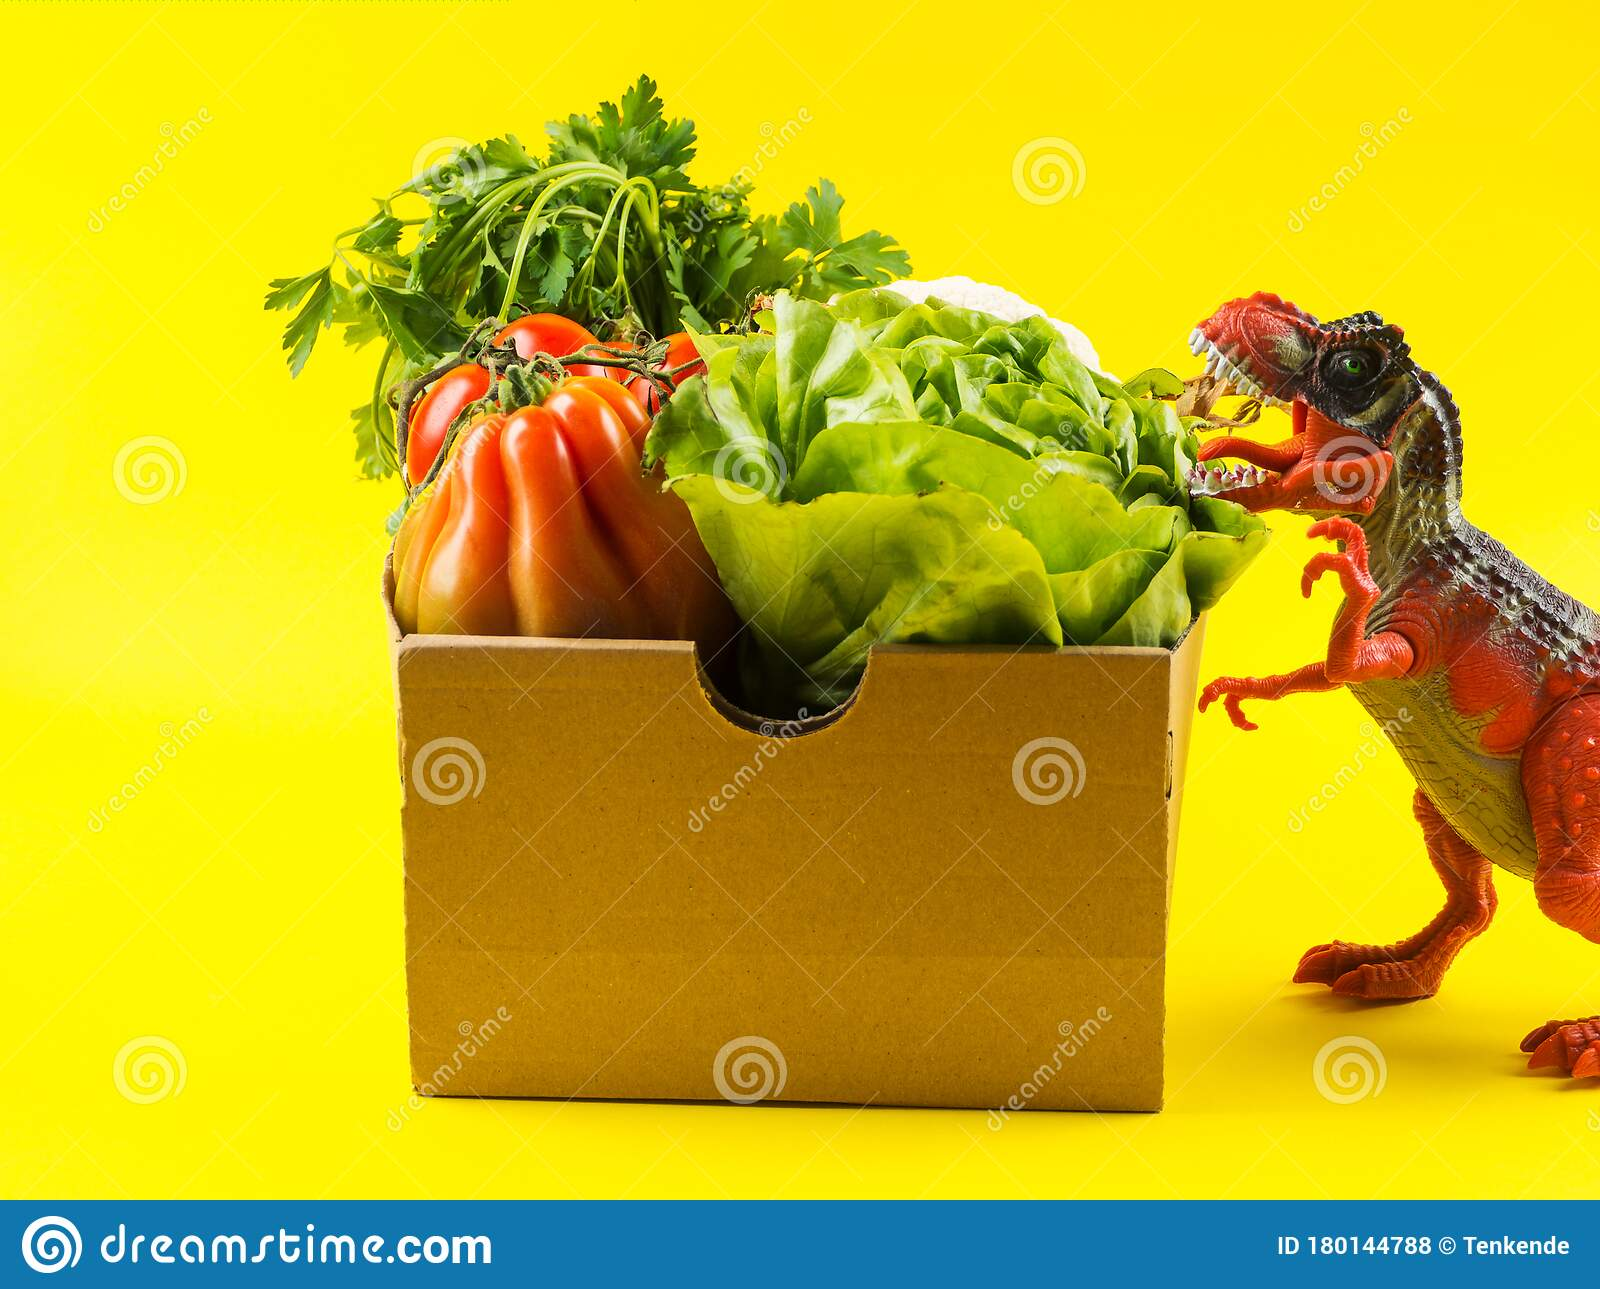 Box With Fresh Produce And Angry Dinosaur Stock Photo ...